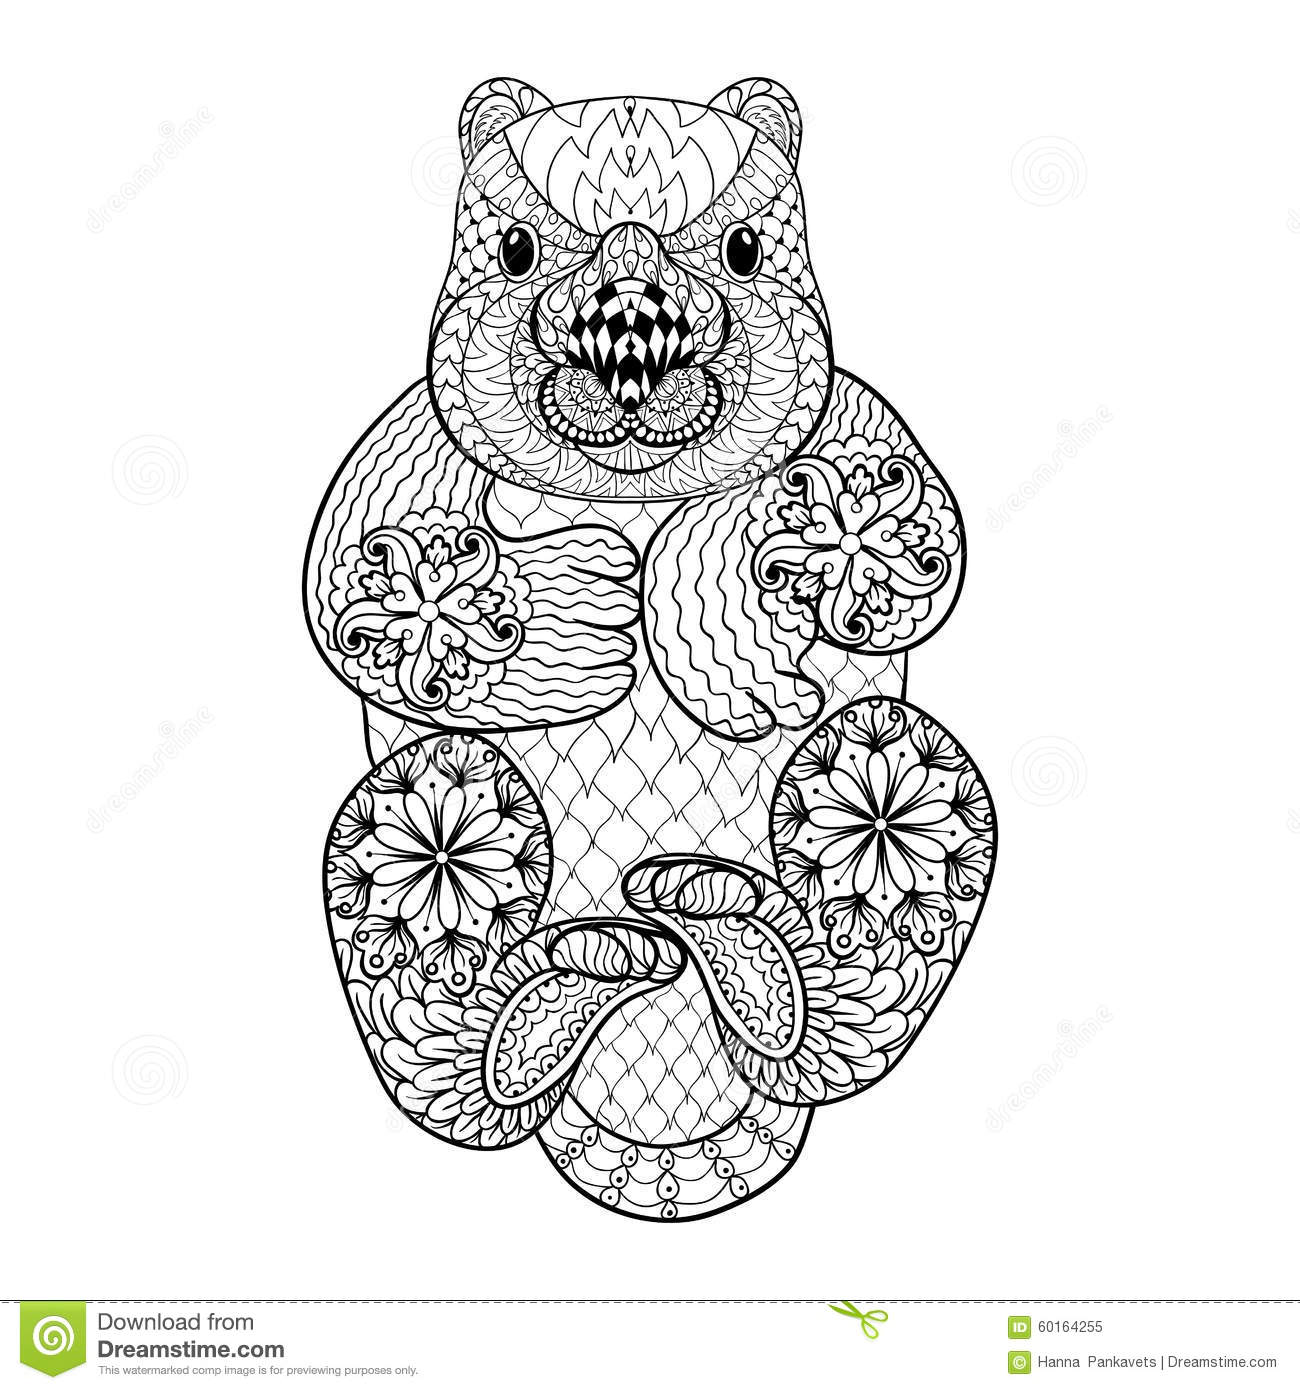 Finished Adult Coloring Pages Animal Coloring Pages